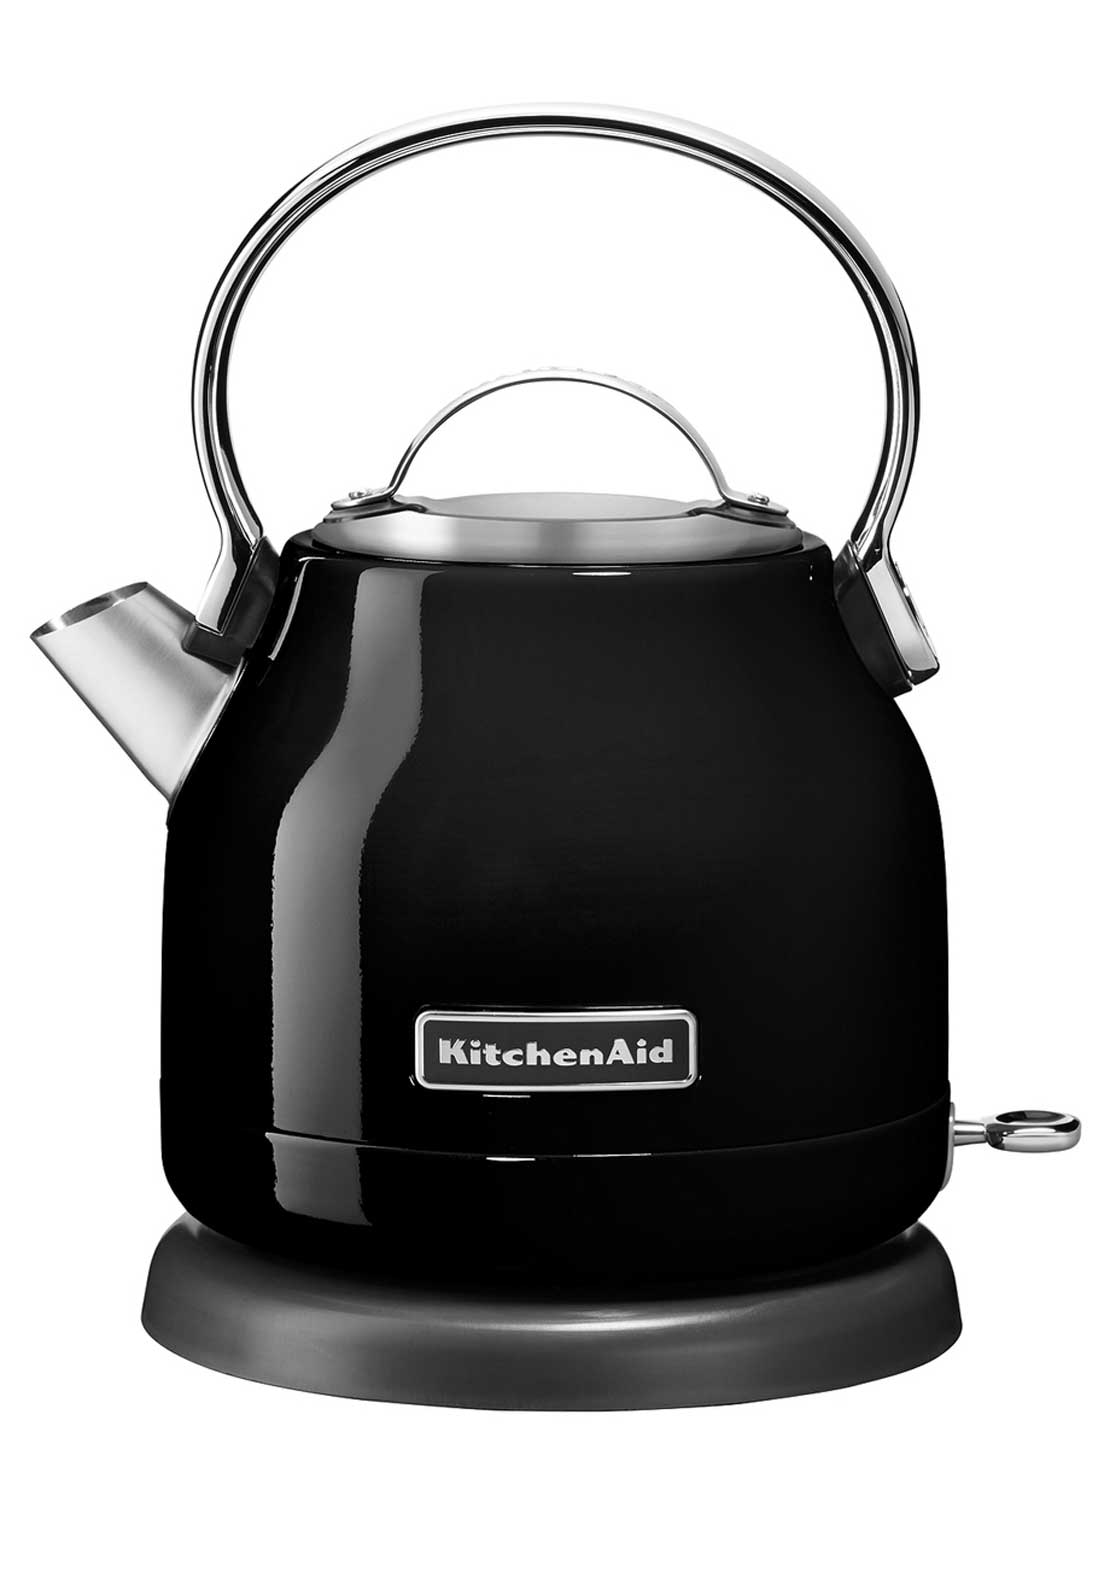 KitchenAid 1.25L Dome Electric Kettle, Onyx Black